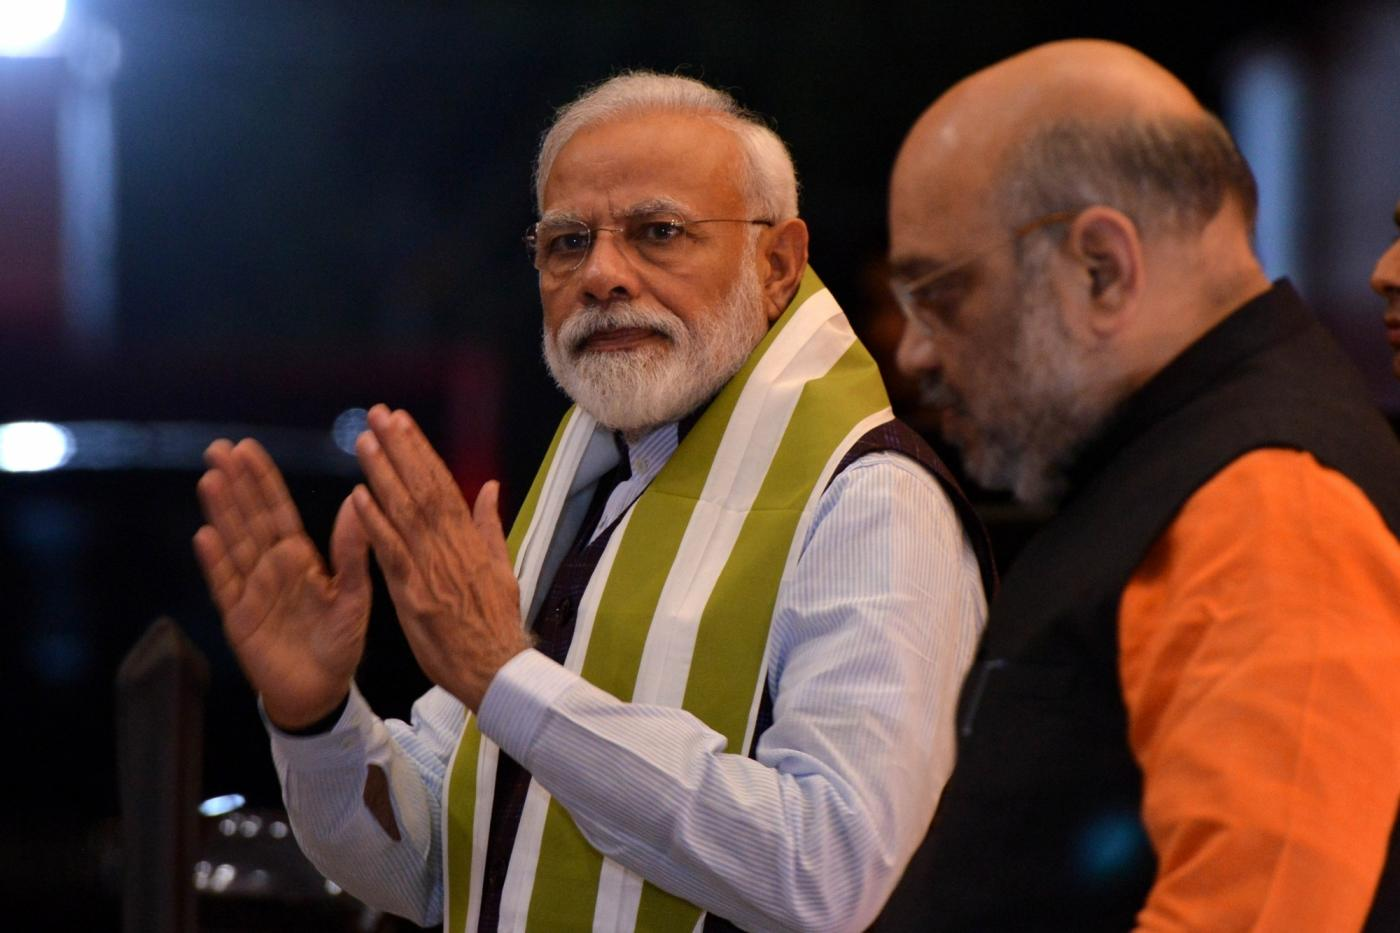 New Delhi: Prime Minister Narendra Modi and BJP President Amit Shah arrive at BJP headquarters to attend party's central election committee meeting in New Delhi, on March 20, 2019. (Photo: IANS) by .